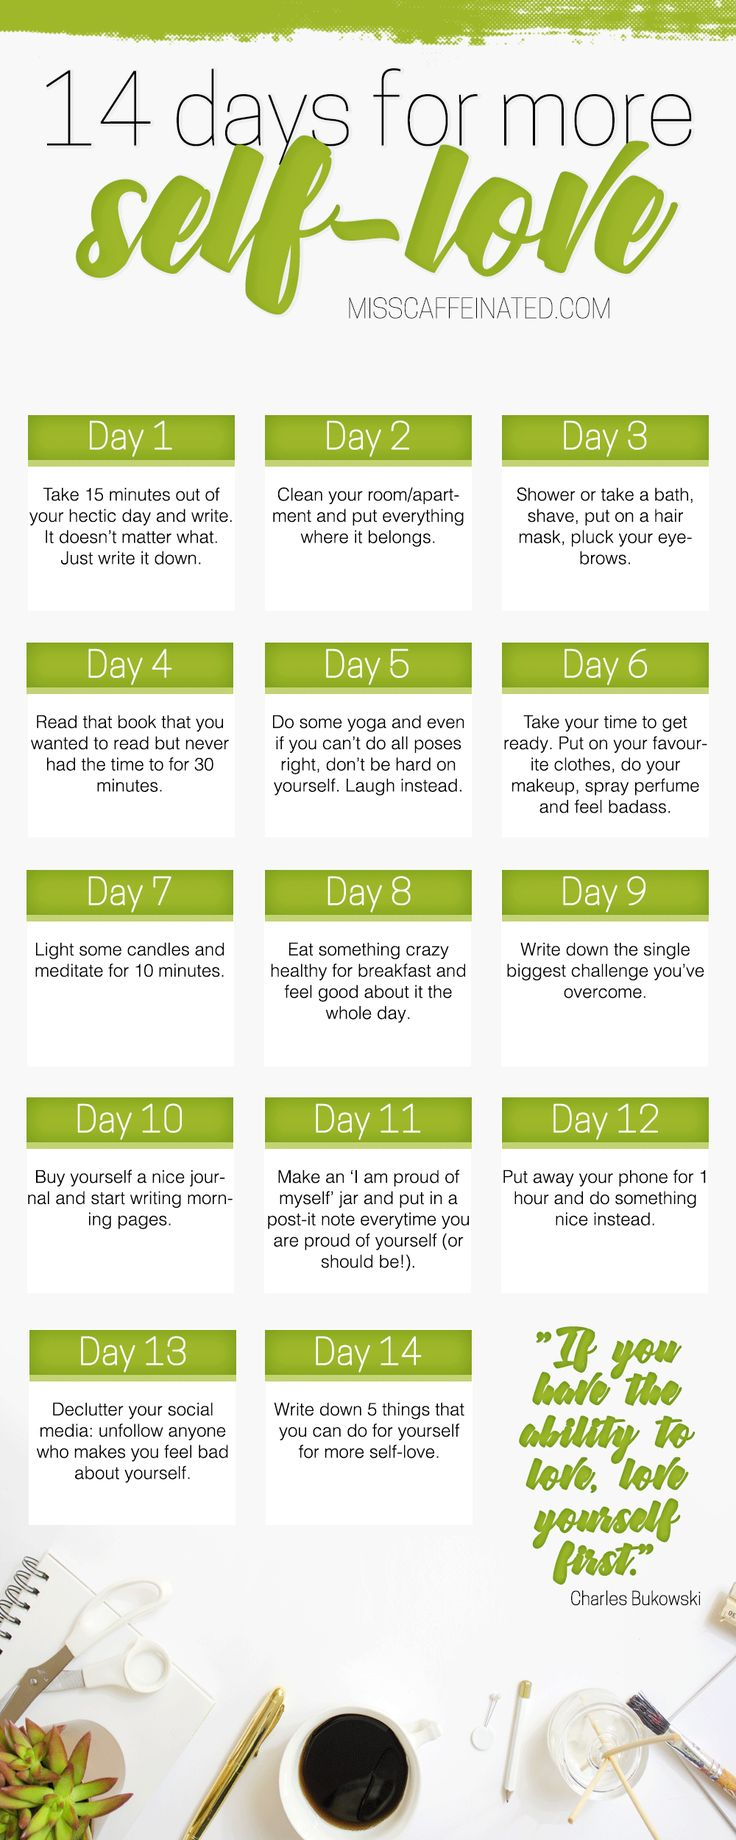 Do you love yourself? I created a challenge that you can do in 14 days for more self-love. Try it out and see for yourself!